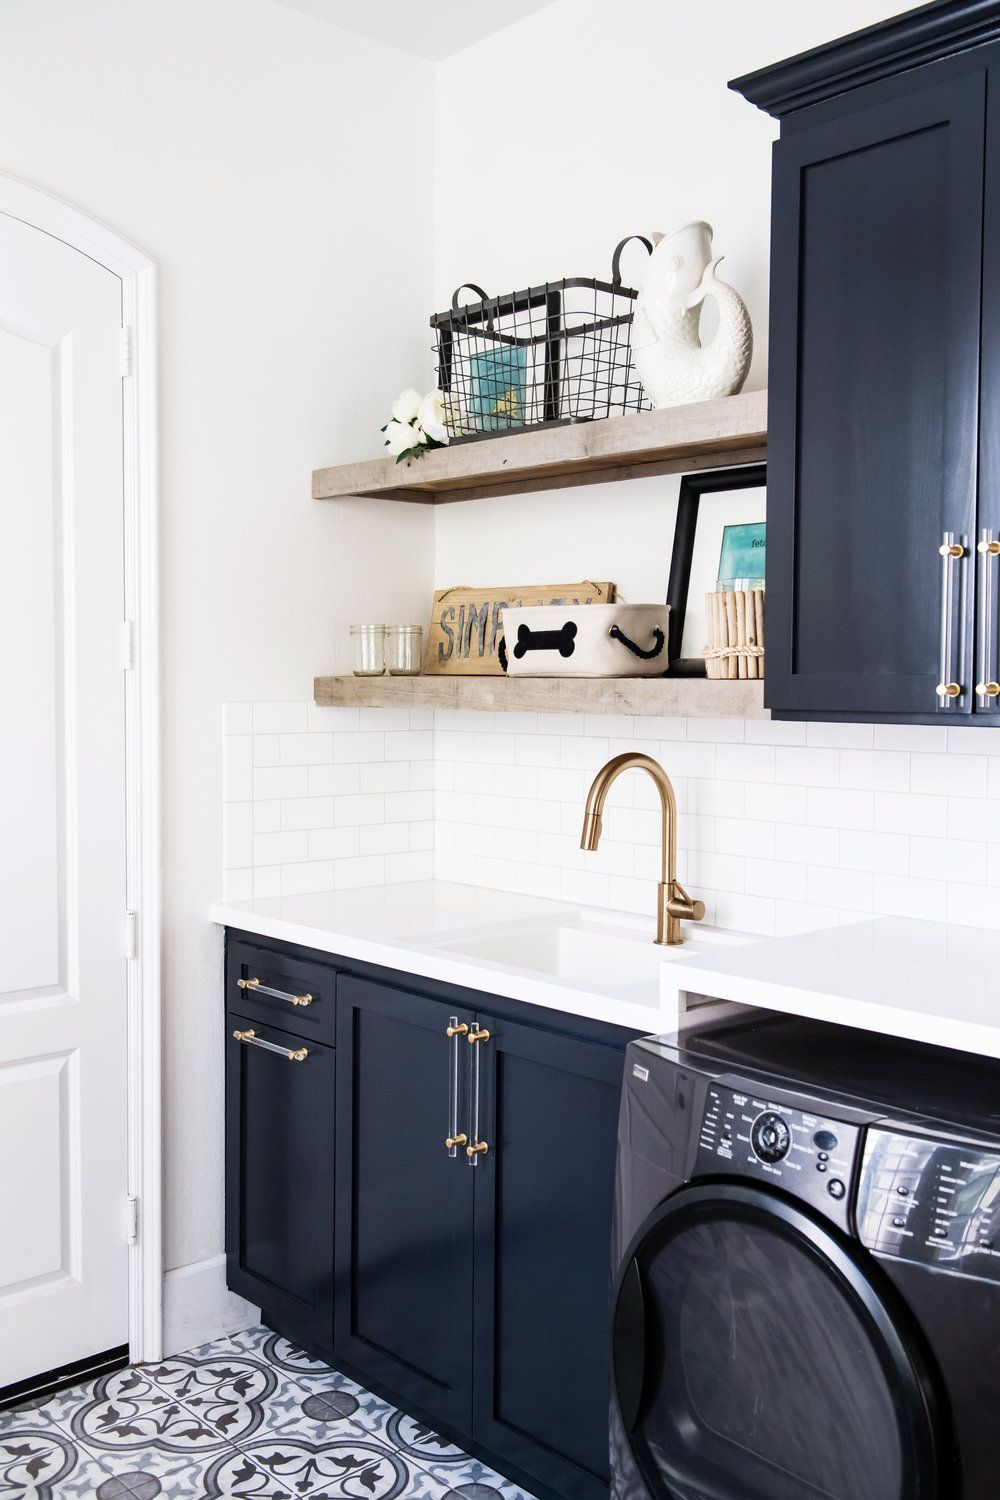 Navy Blue Cabinets And Pattern Tile Flooring In Modern Laundry Room By Savvy Interiors San Go Ca Laundryroom Mudroomideas